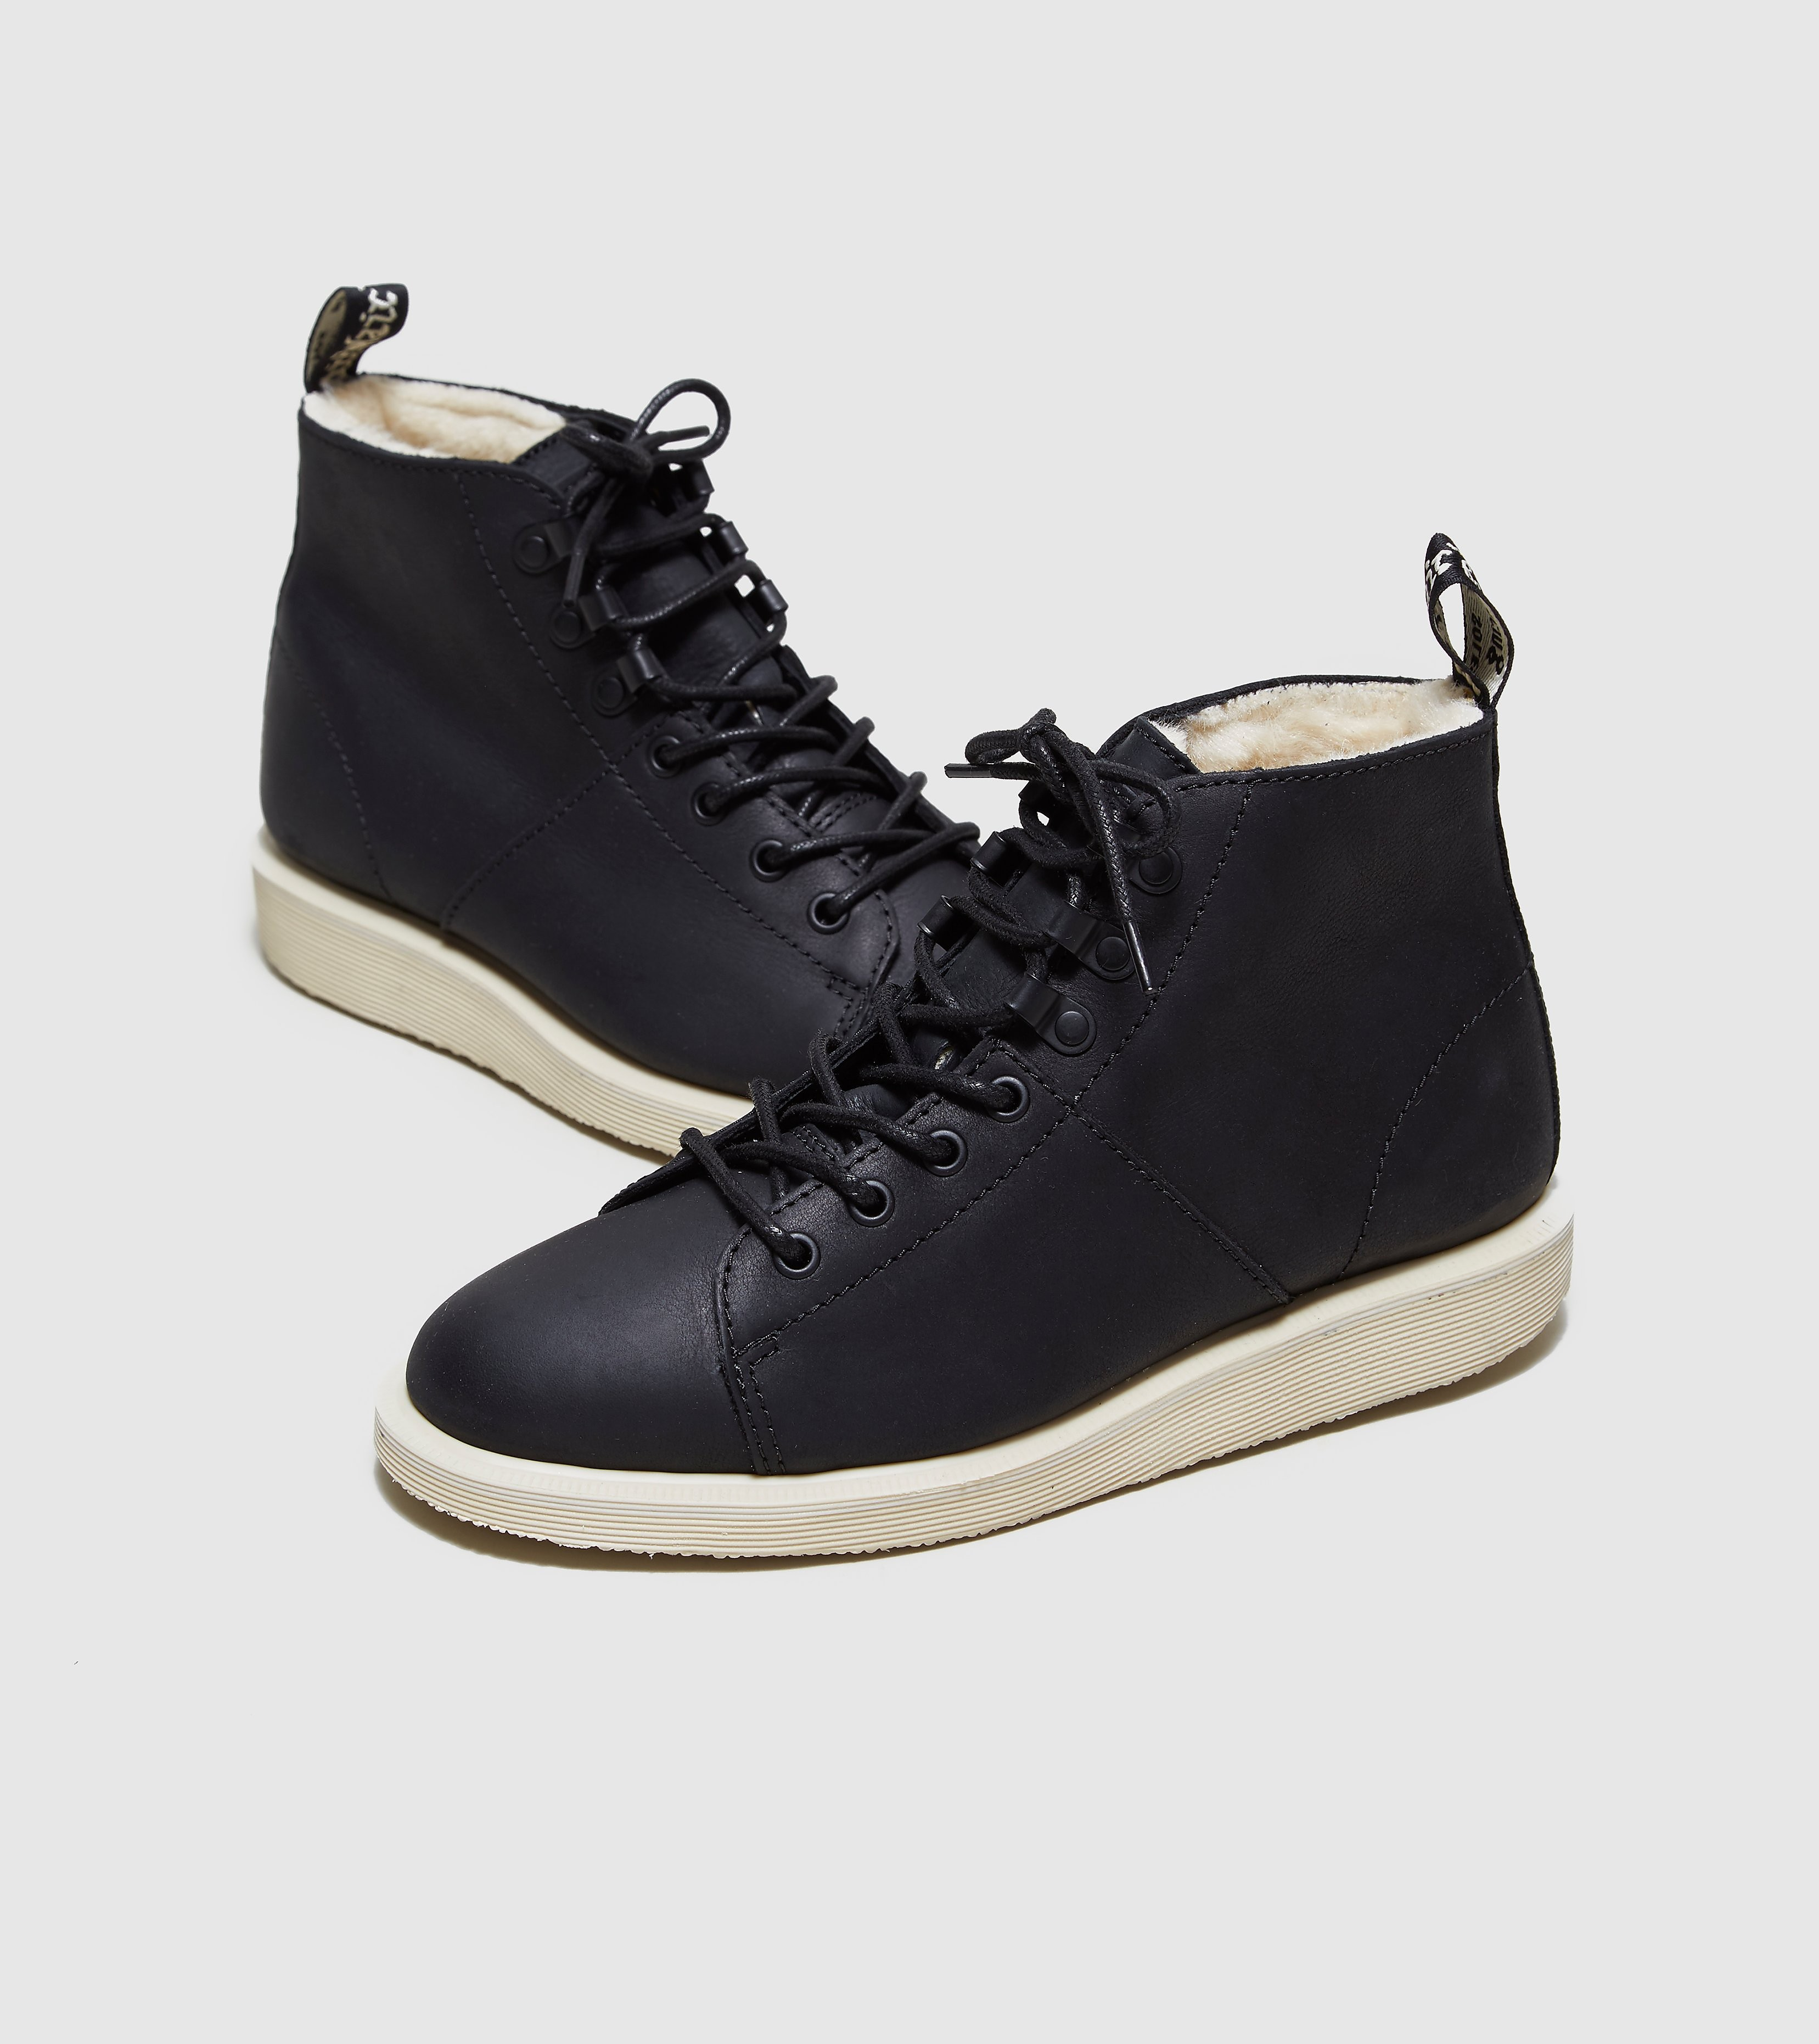 DR. MARTENS Fur Lined Les Wyoming Boots Women's